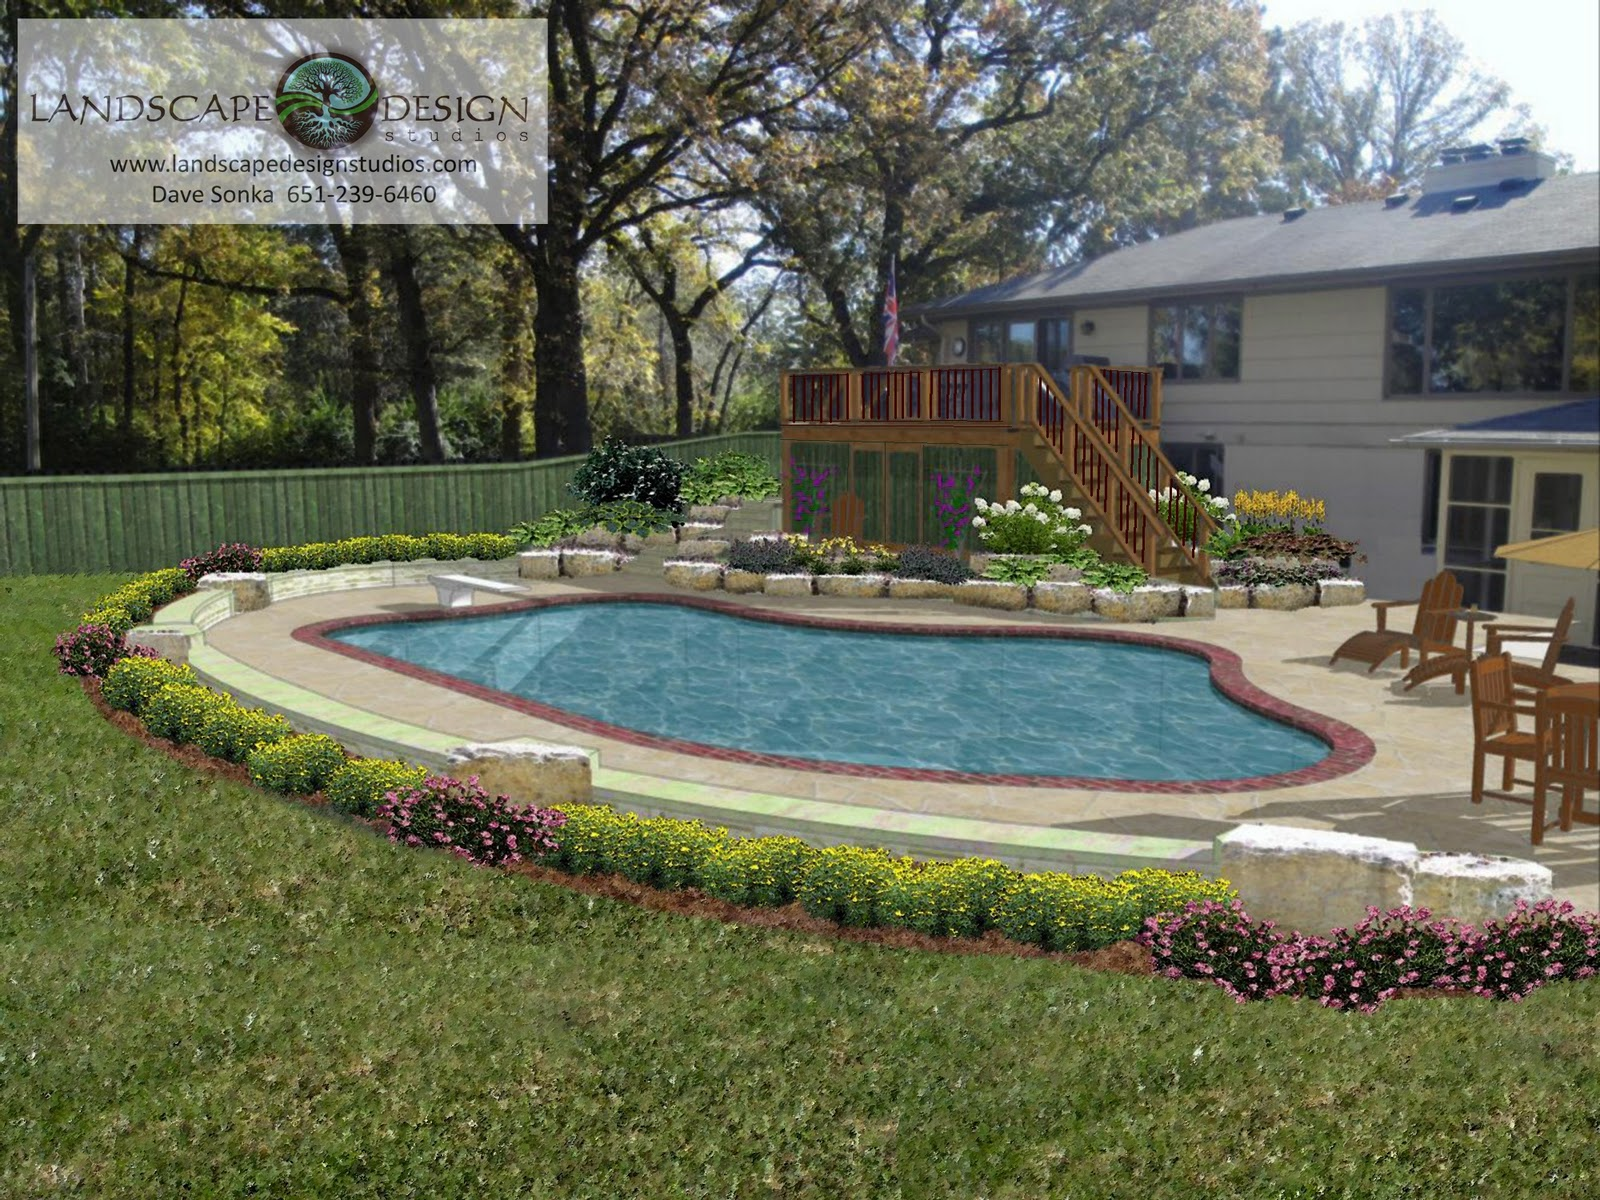 Pool landscaping pictures home design for Pool landscaping ideas